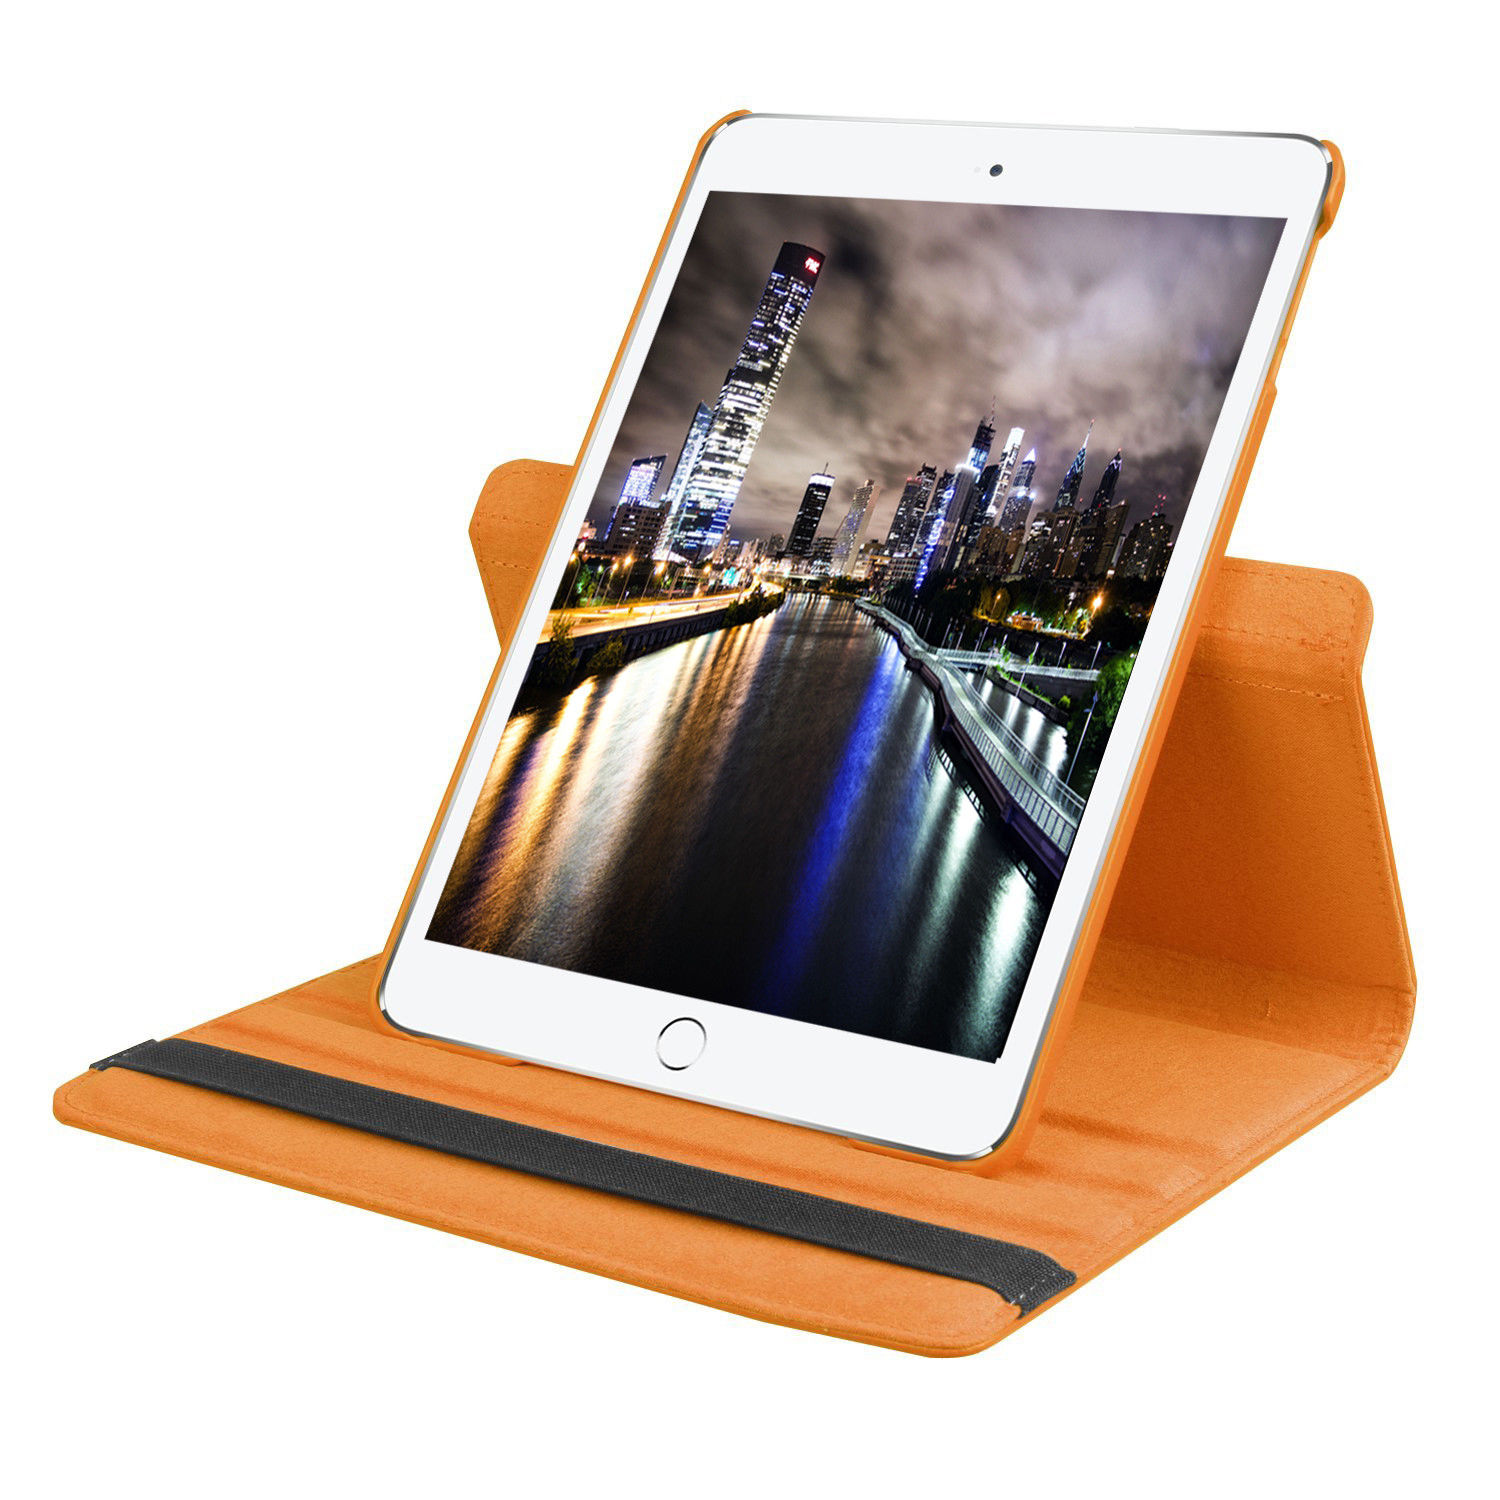 Custodia-per-Apple-iPad-Pro-2017-iPad-Air-3-10-5-Smart-Cover-Case-Custodia-Protettiva miniatura 90